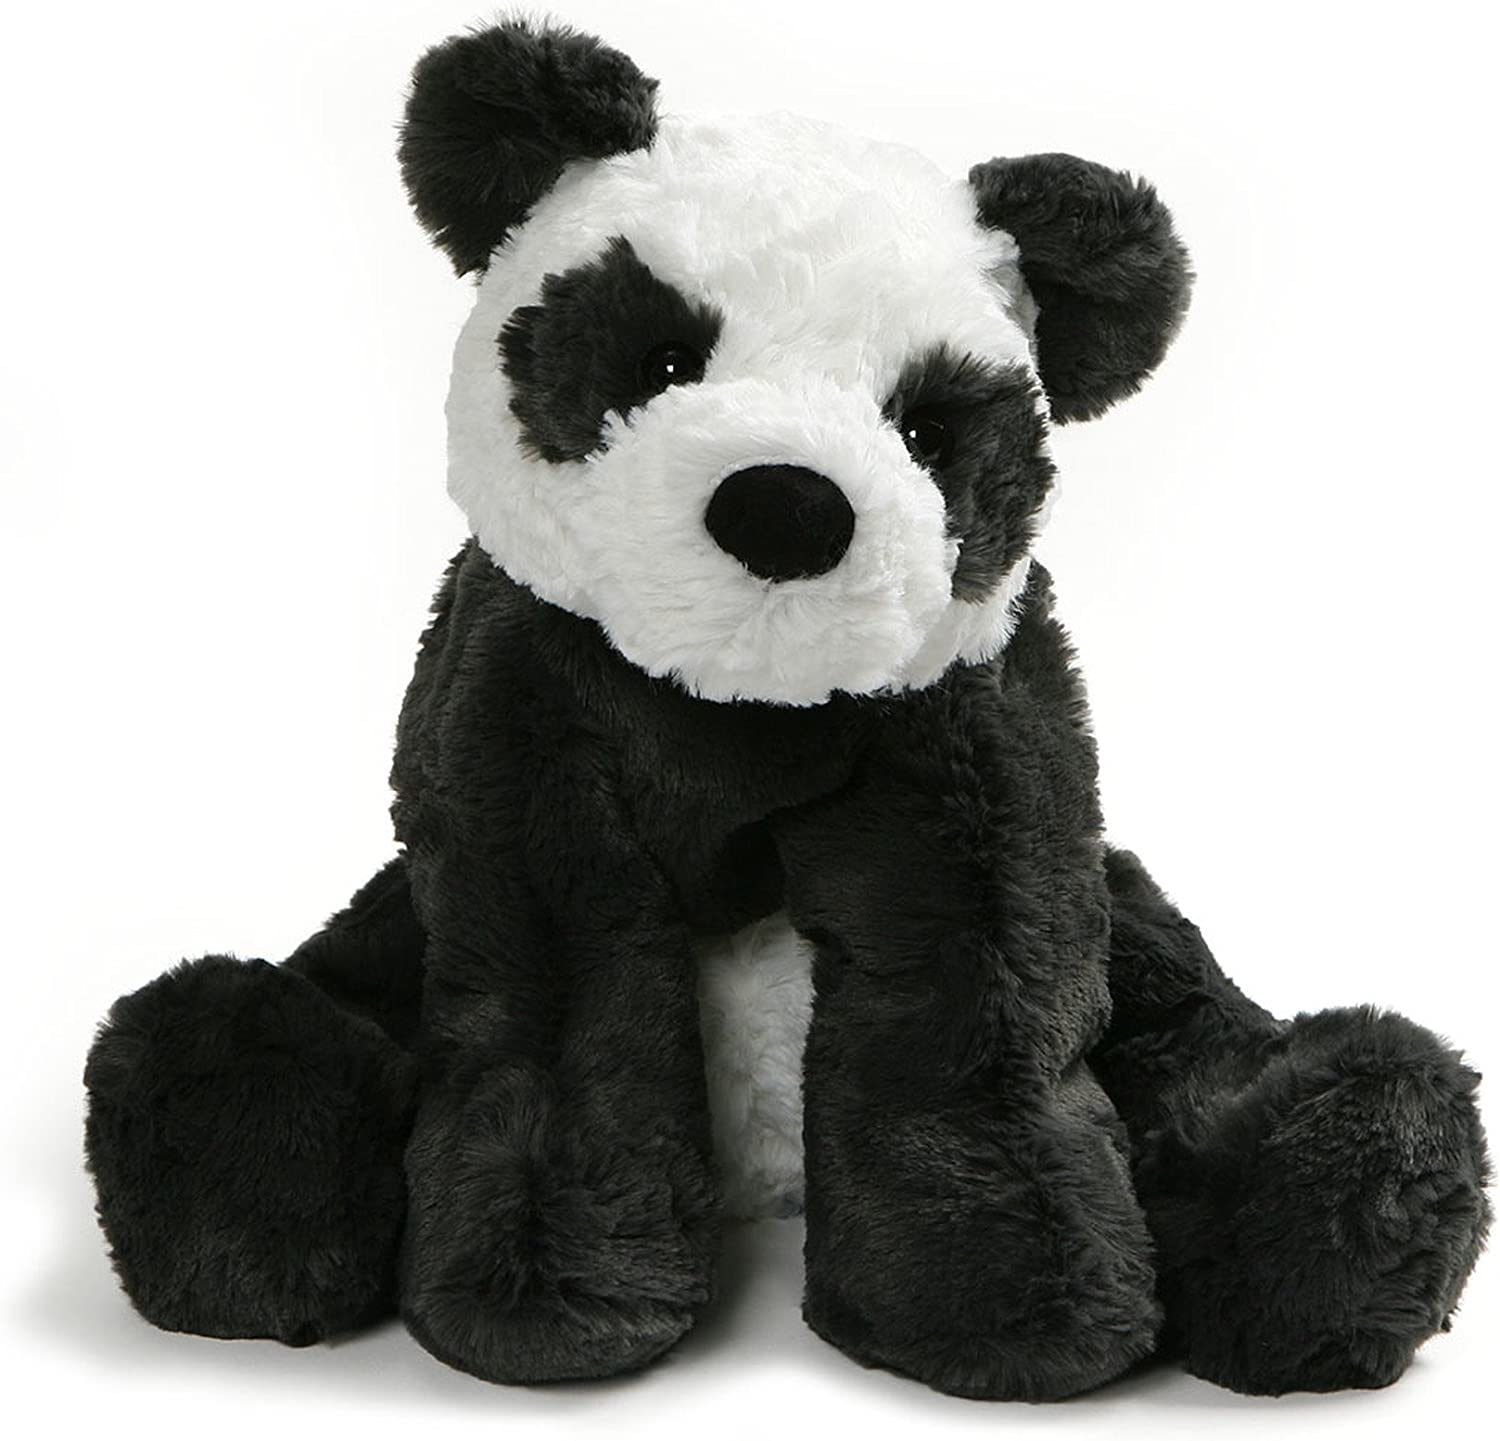 GUND Cozys Collection Panda Bear Animal Plush Stuffed and Black Max Manufacturer OFFicial shop 57% OFF